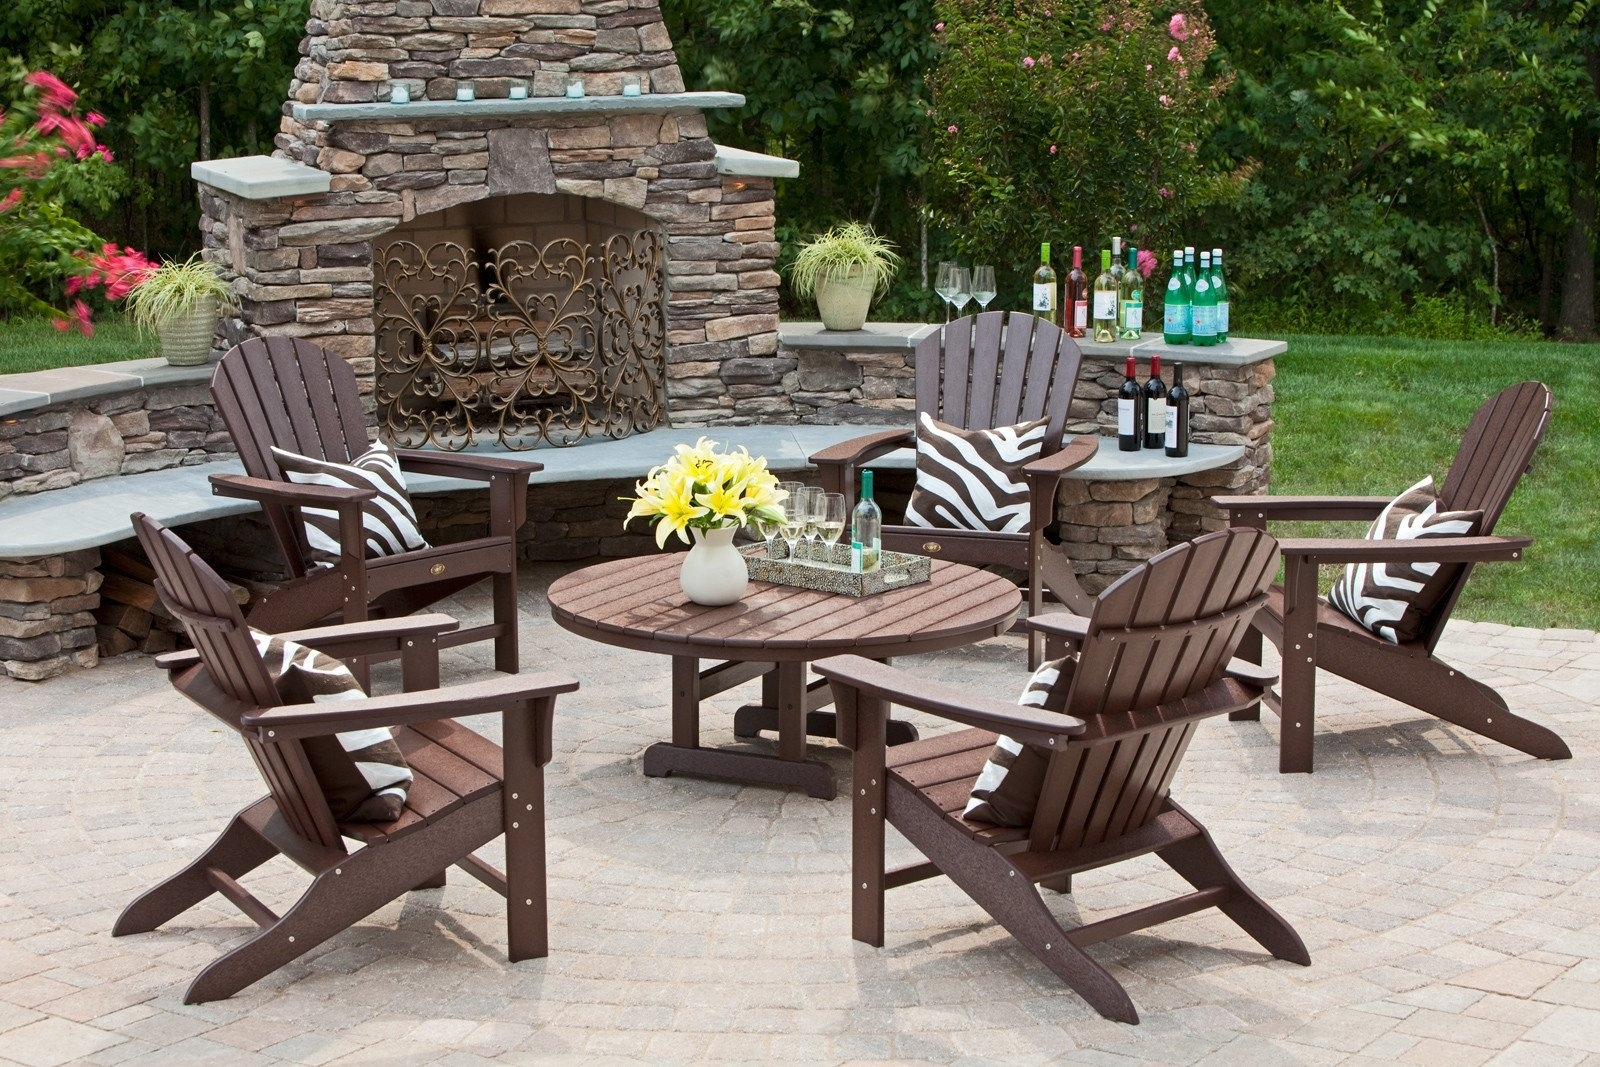 Fashionable Patio Conversation Sets Or Traditional Furniture Sets A Choice With Regard To Iron Patio Conversation Sets (View 2 of 20)